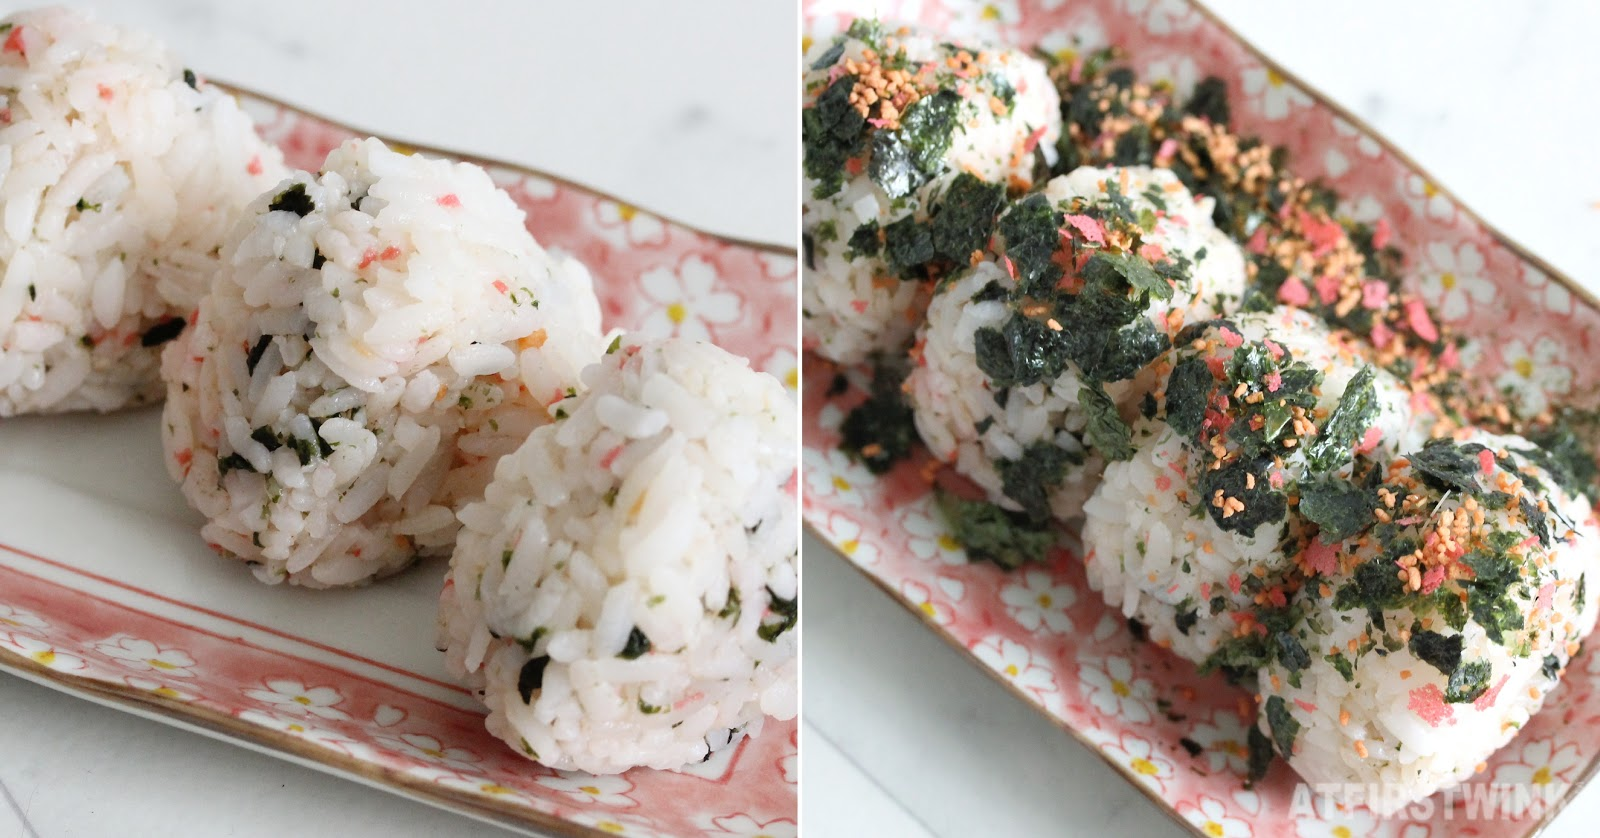 Triangular rice balls with salmon furikake